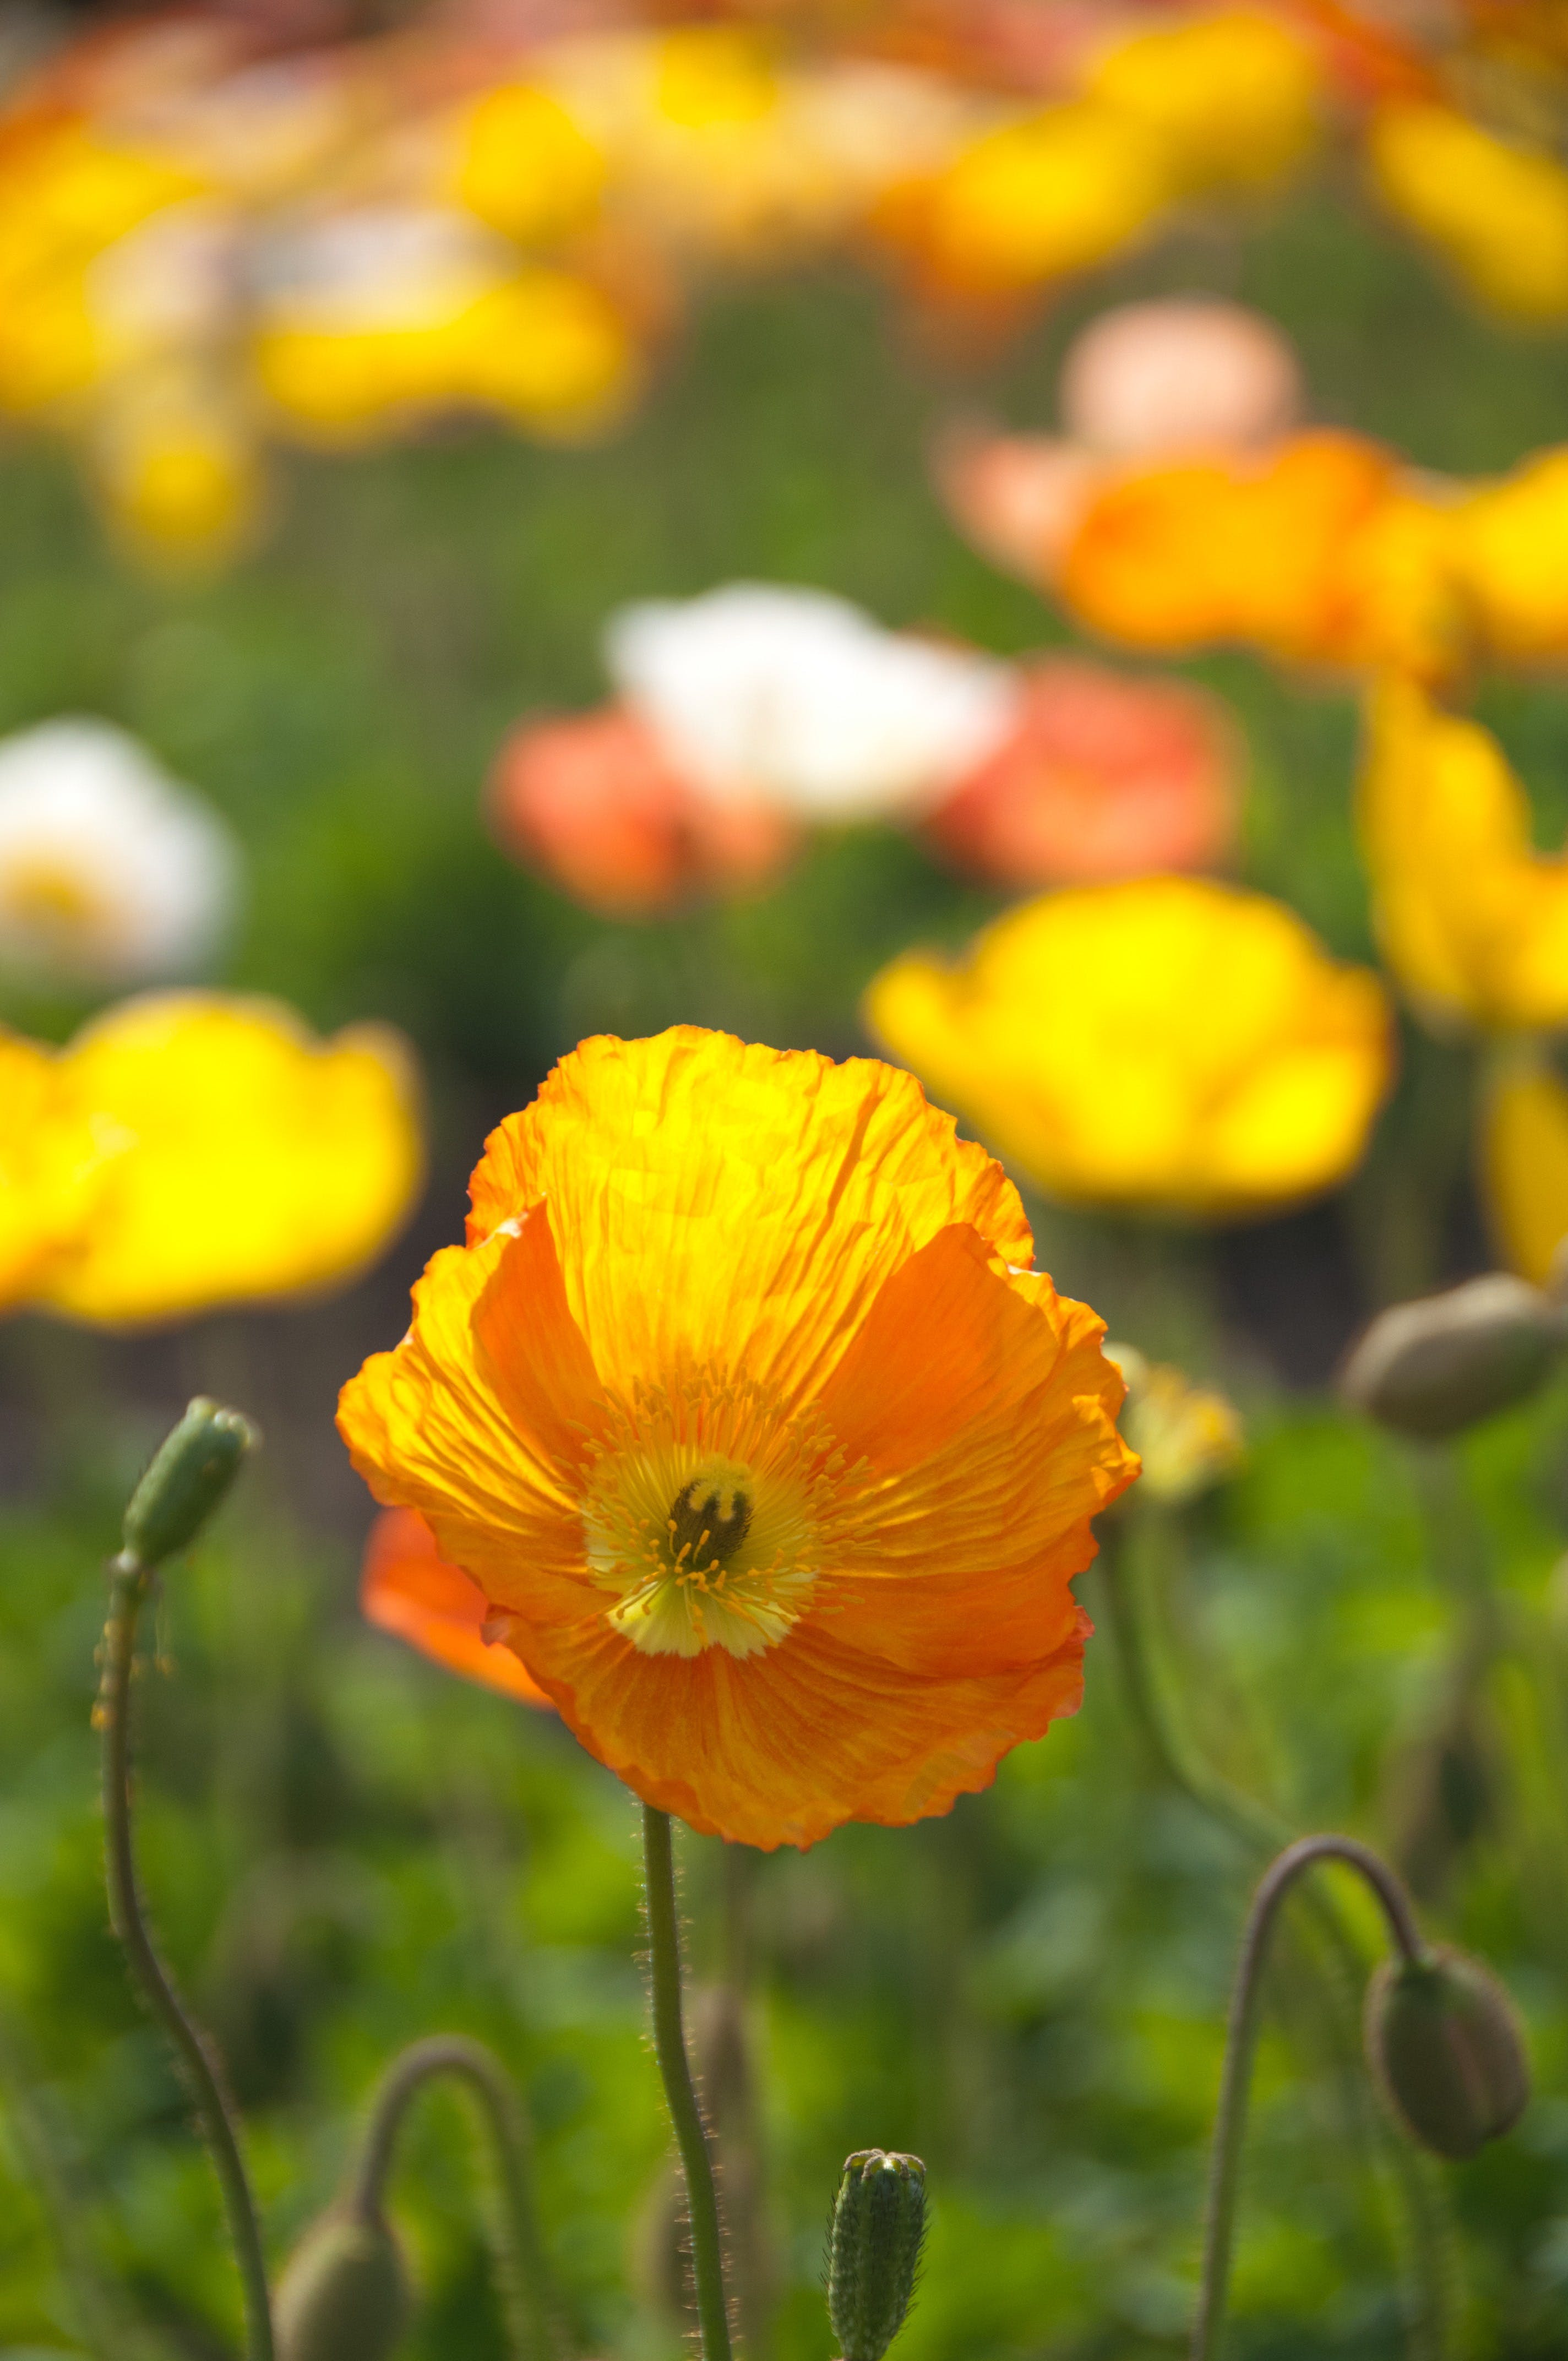 Free stock photo of nature, flowers, spring, poppy